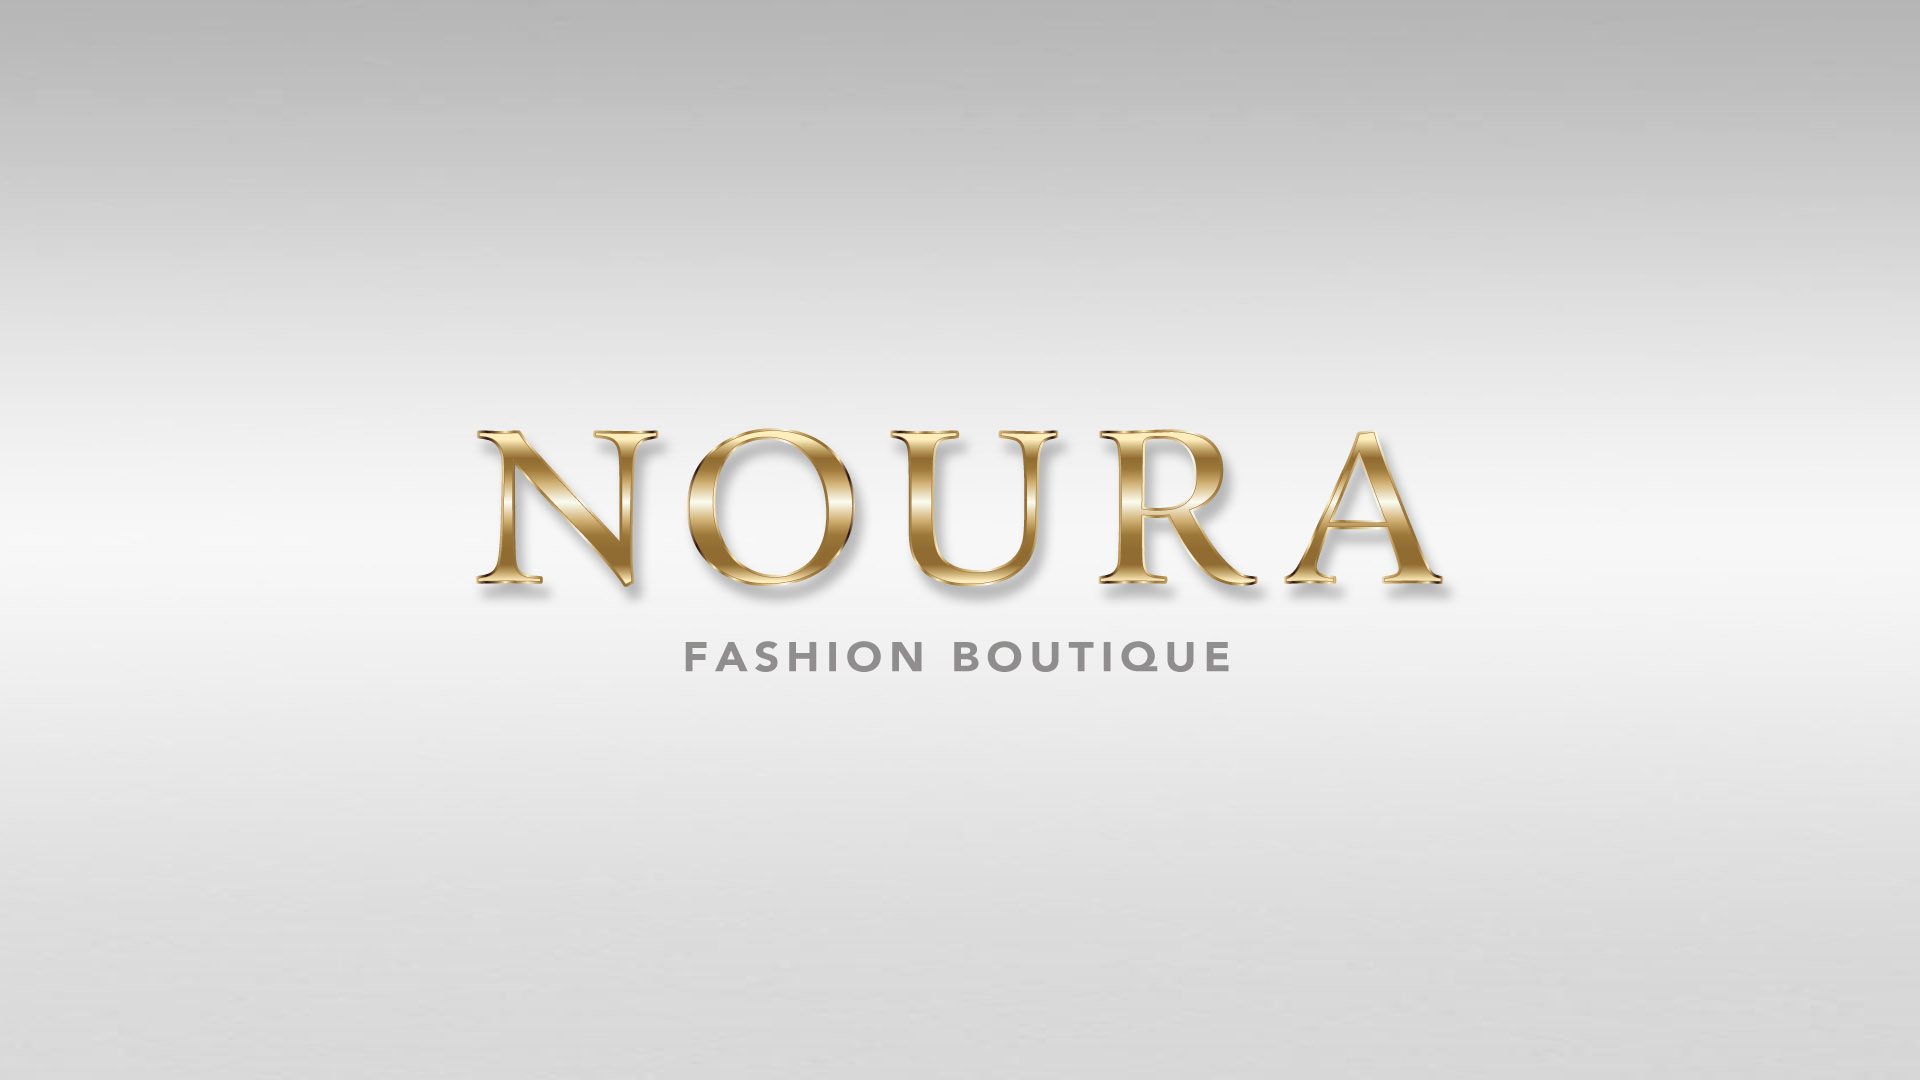 Logo - Konzept und Design - NOURA Fashion Boutique